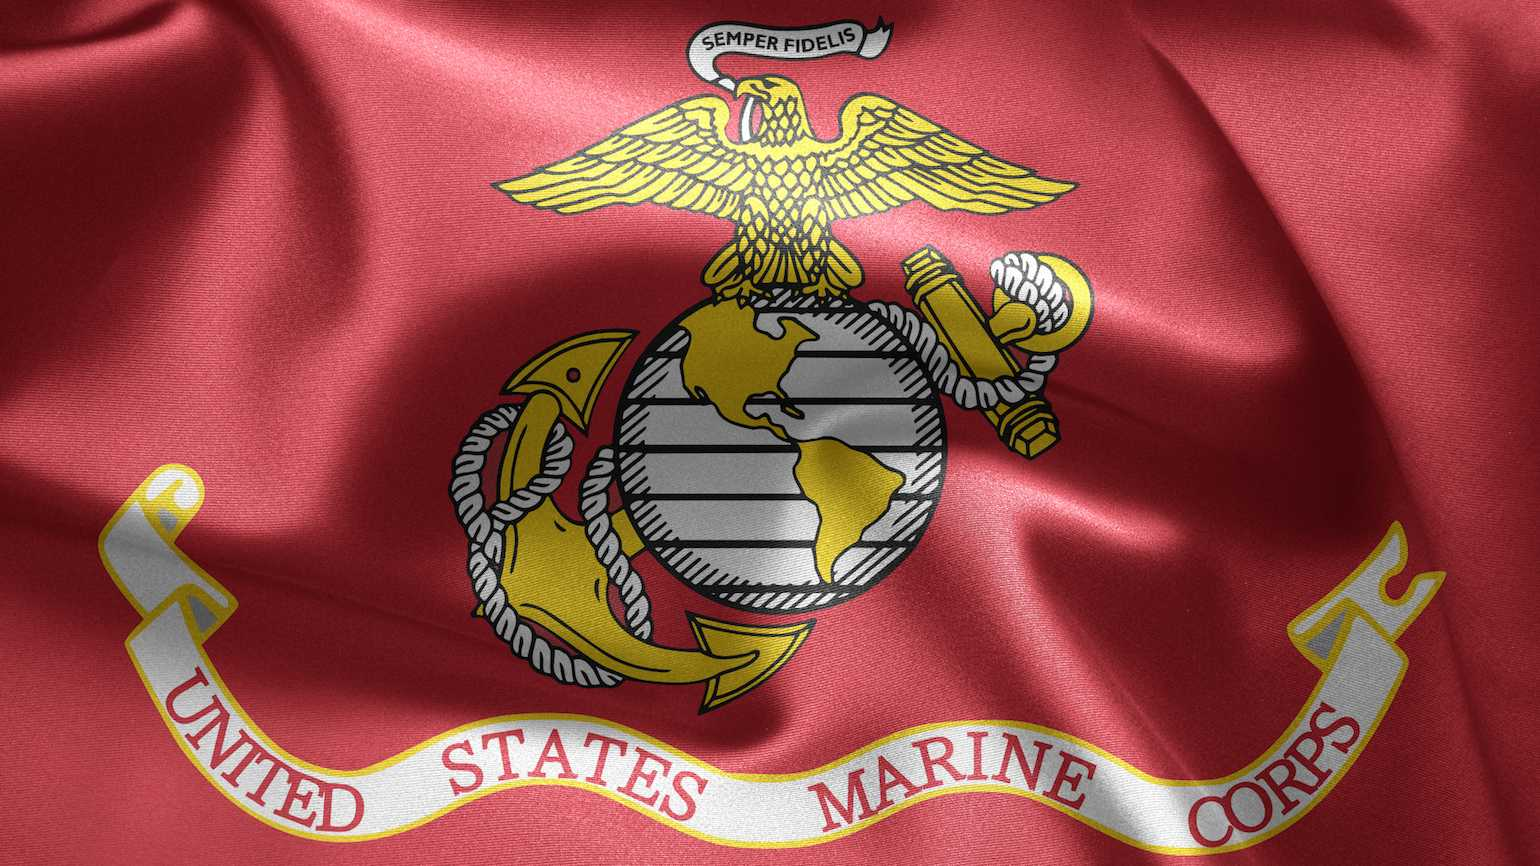 The flag of the U.S. Marines